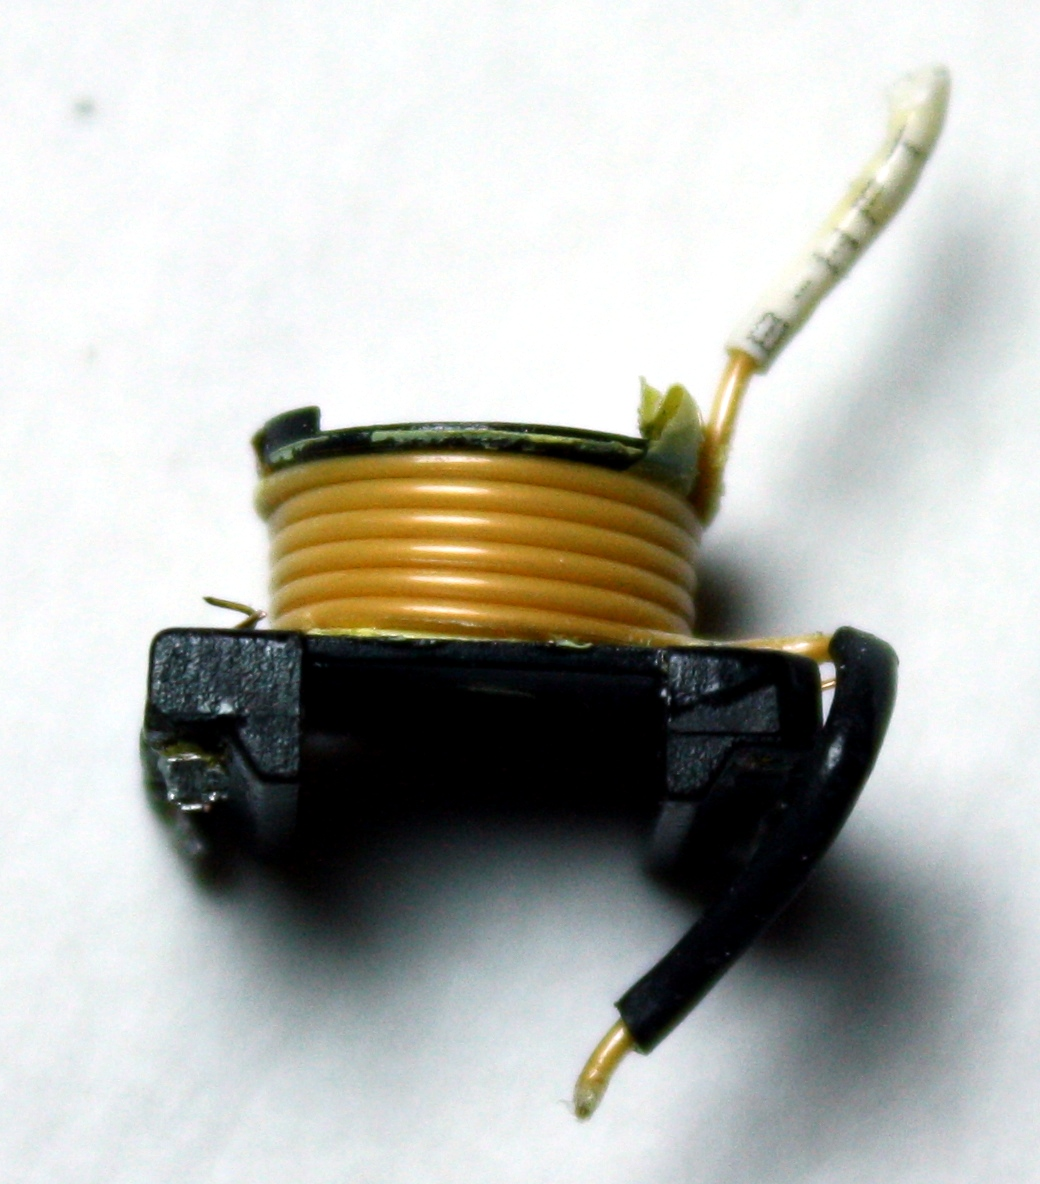 hight resolution of secondary output winding from iphone charger flyback transformer